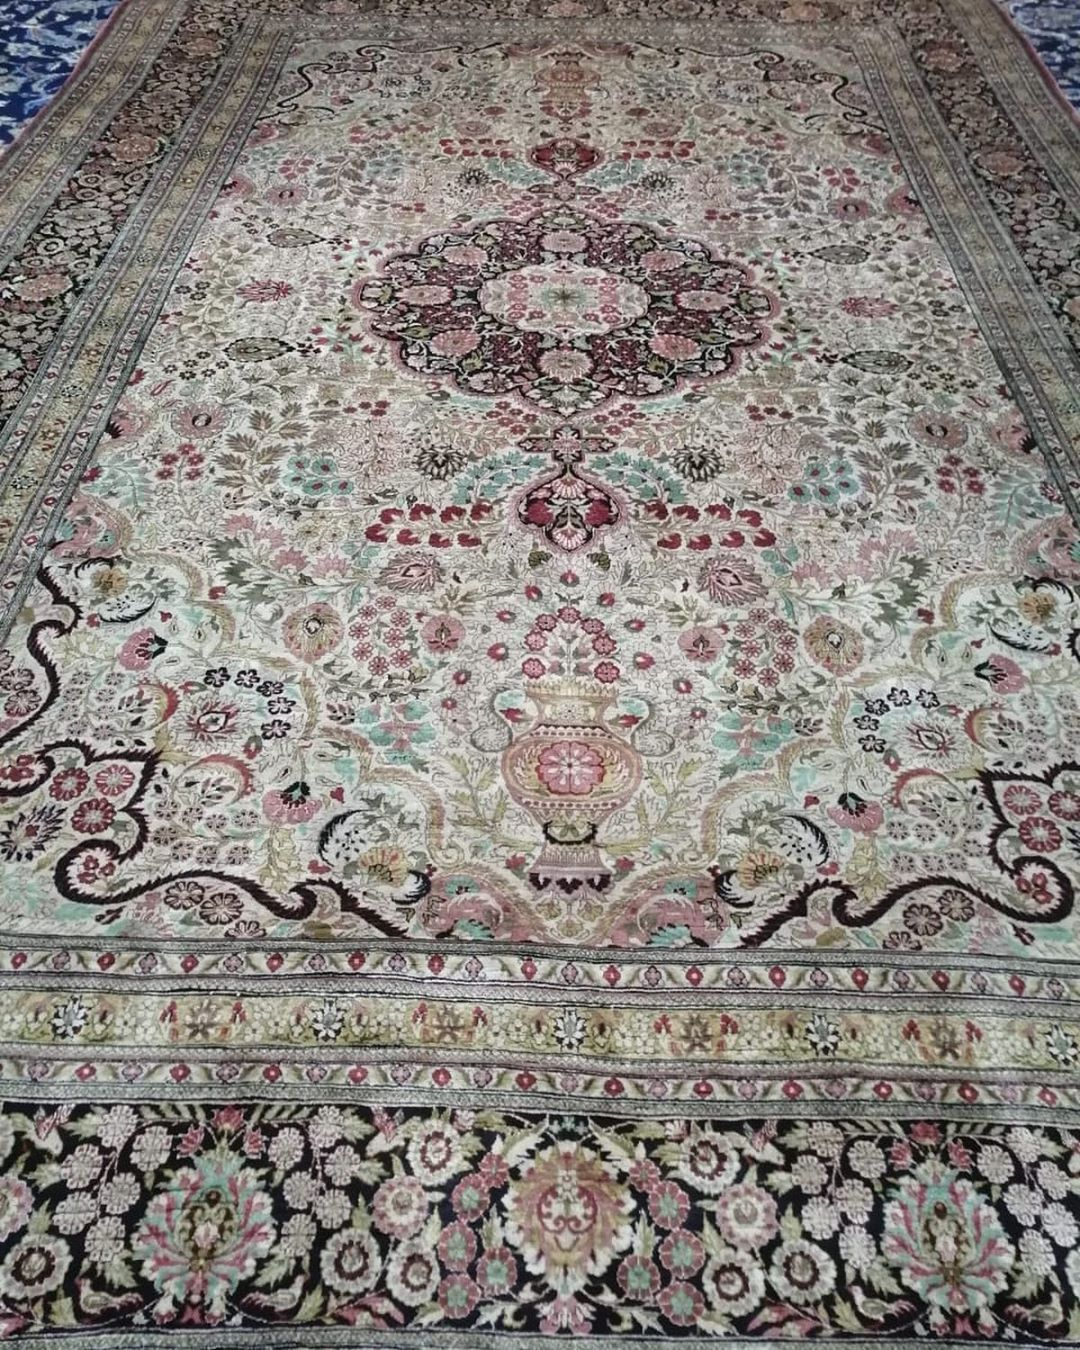 Colors Are Attractive Hand Made Carpet From Iran Qum High Quality Full Silk Carpet Size Is 6 9 Dm For Price Queries Limited Viscose Rug Rugs On Carpet Rugs